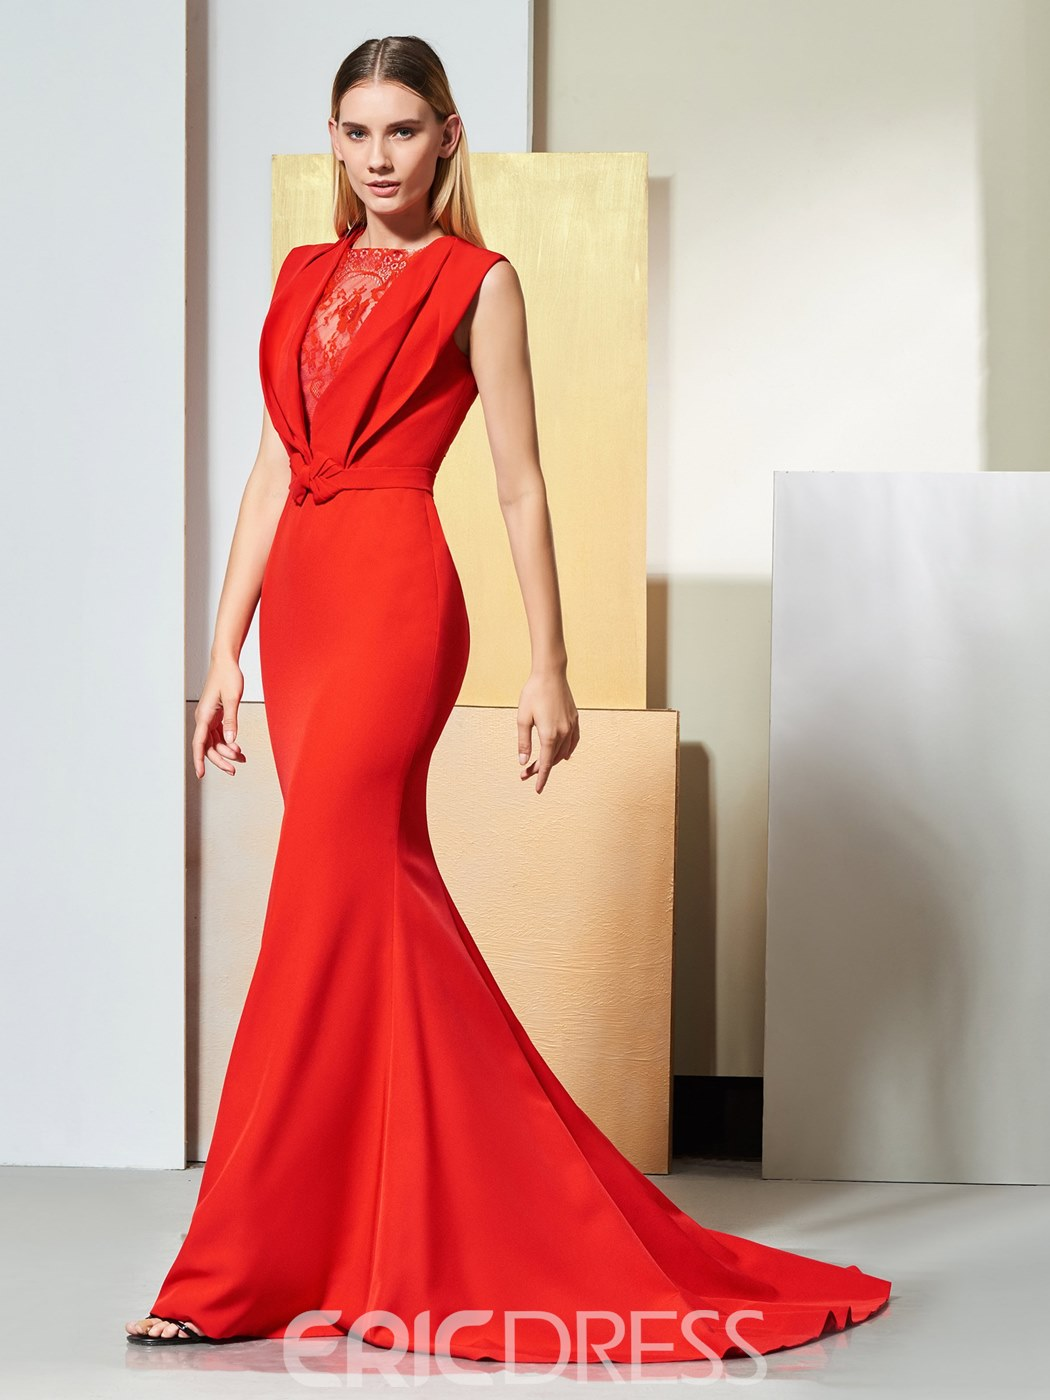 Ericdress Elegant Red Mermaid Evening Dress With Sweep Train